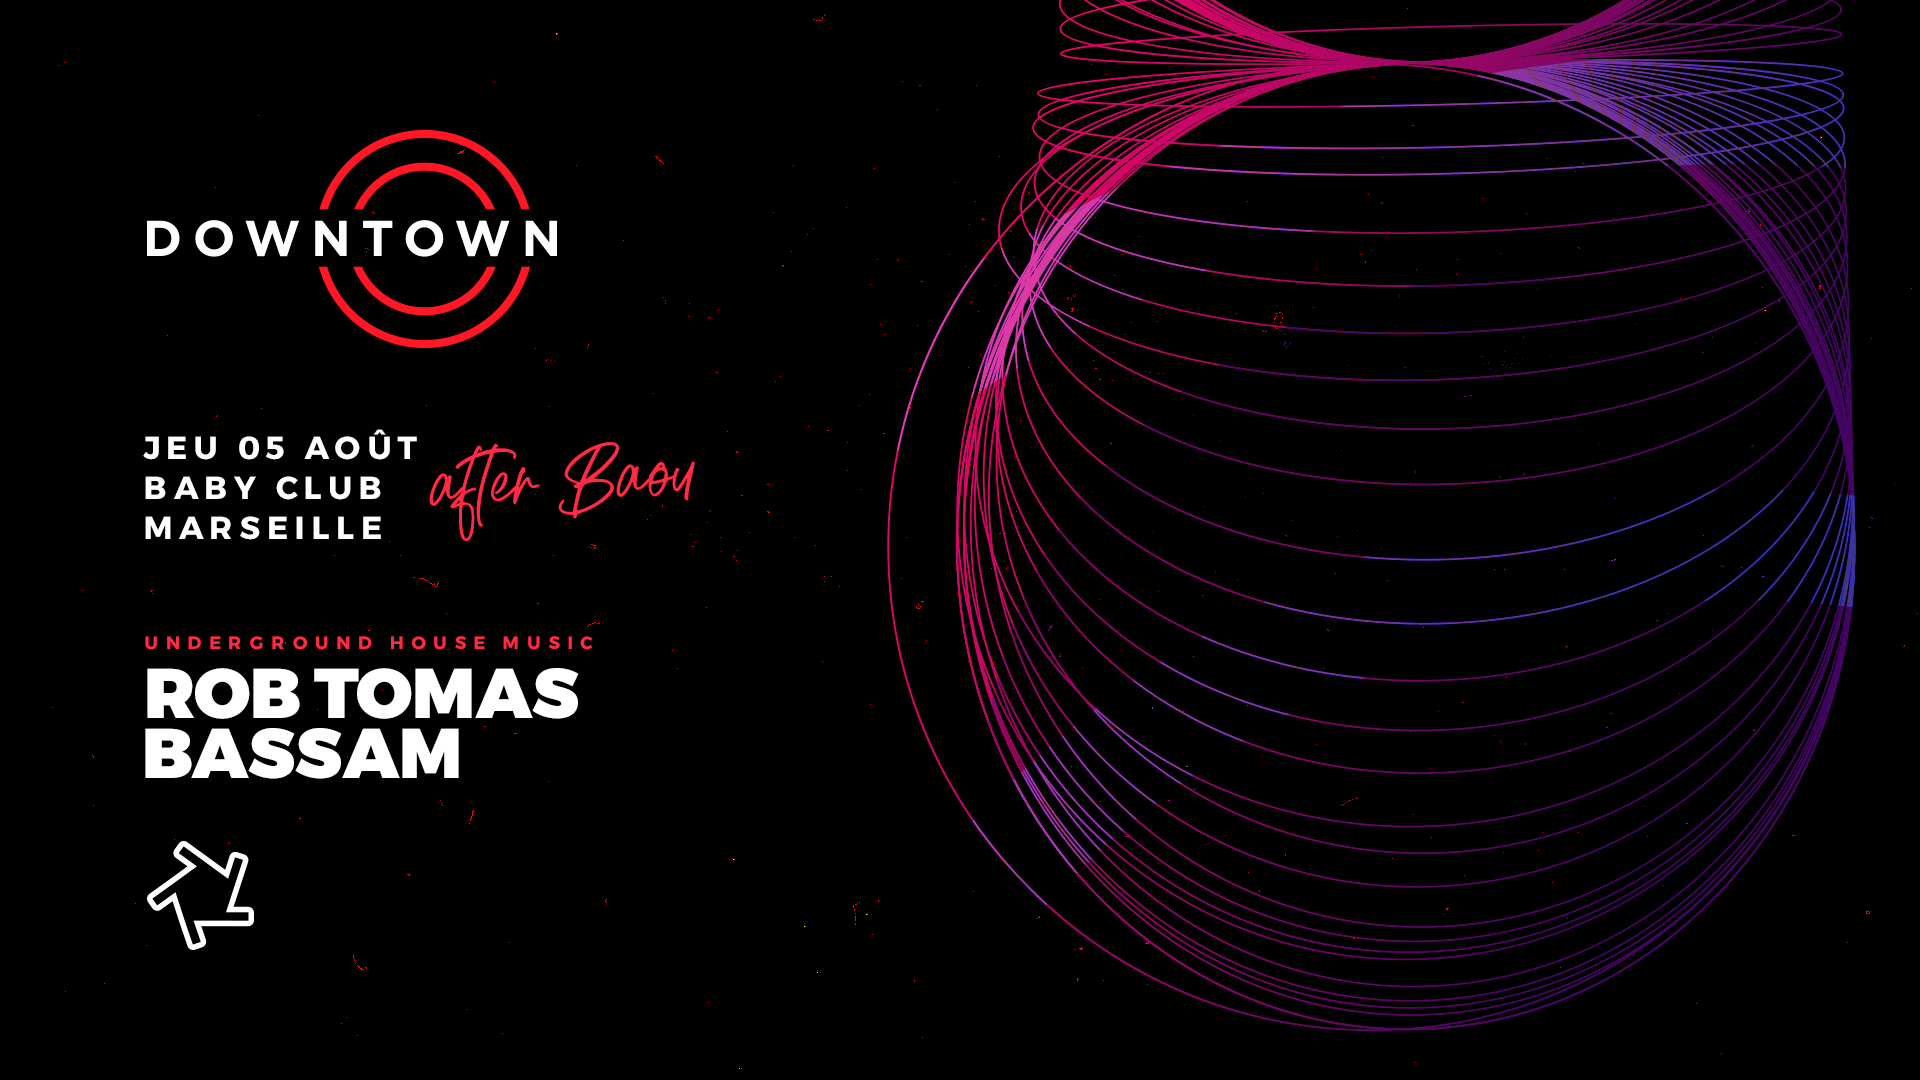 Baby : Downtown (after Baou) - Rob tomas & Bassam